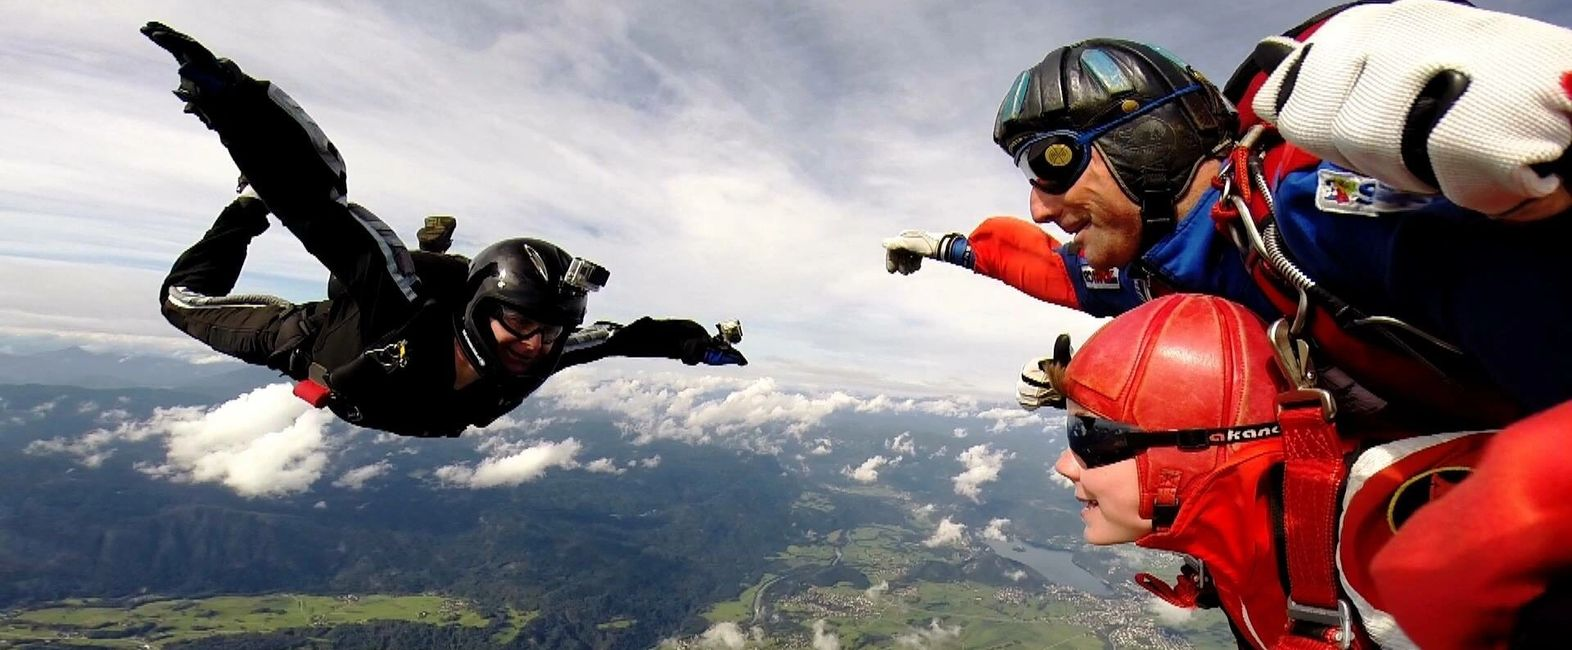 Peter Hayes, The Travelers Blueprint, Skydiving, Europe, Alps, family, adventure, awesome